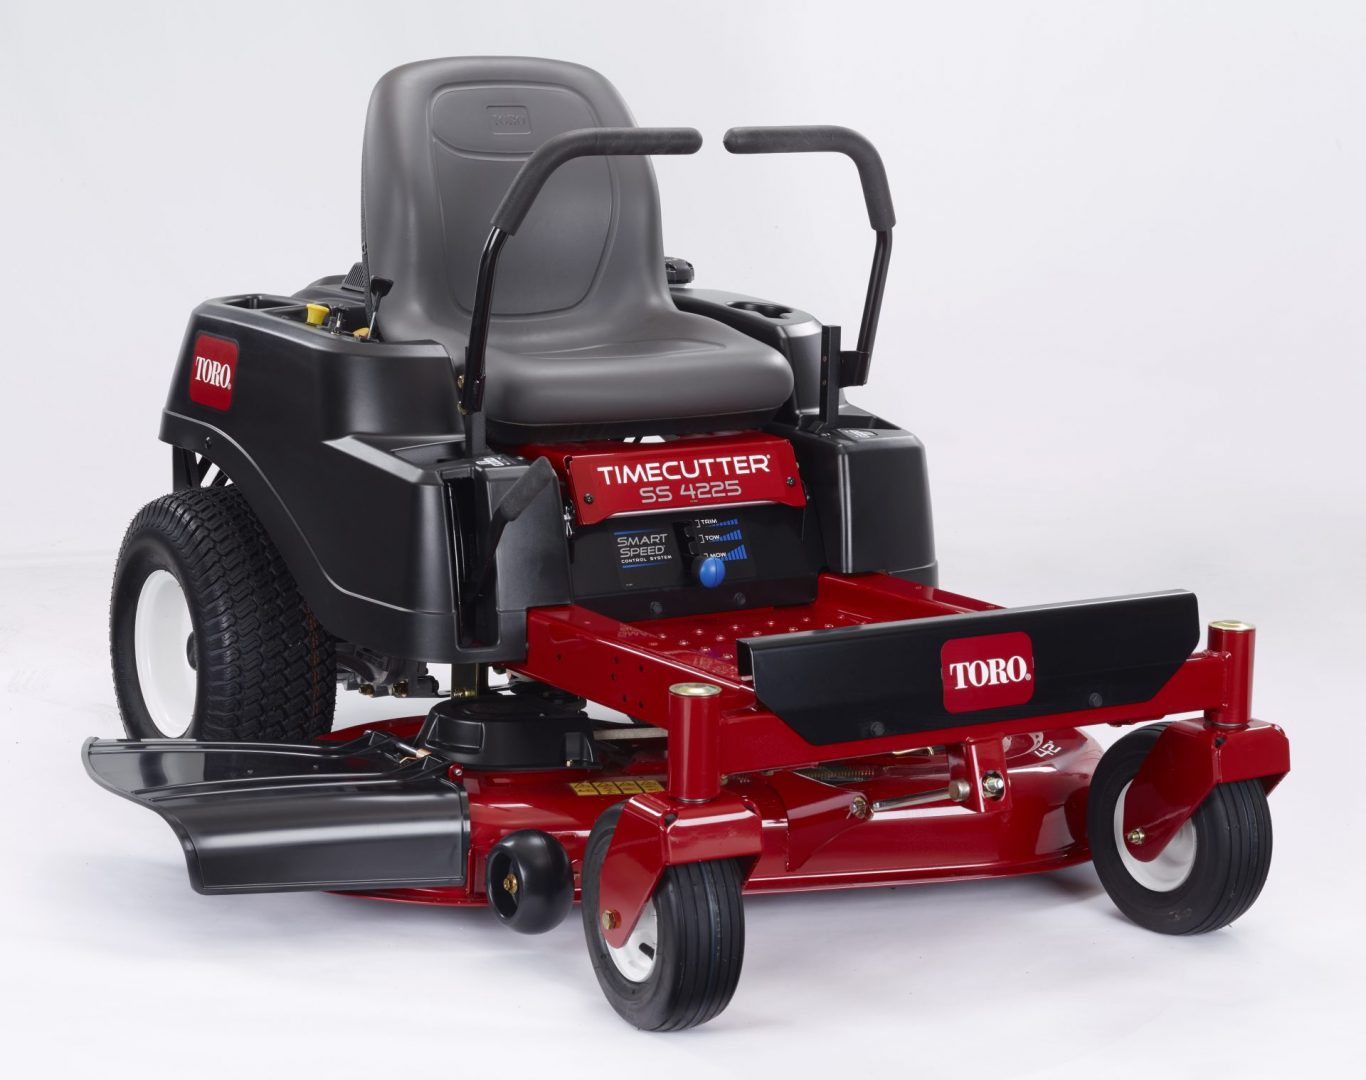 Toro Timecutter SS4225 with Smart Speed® Control System